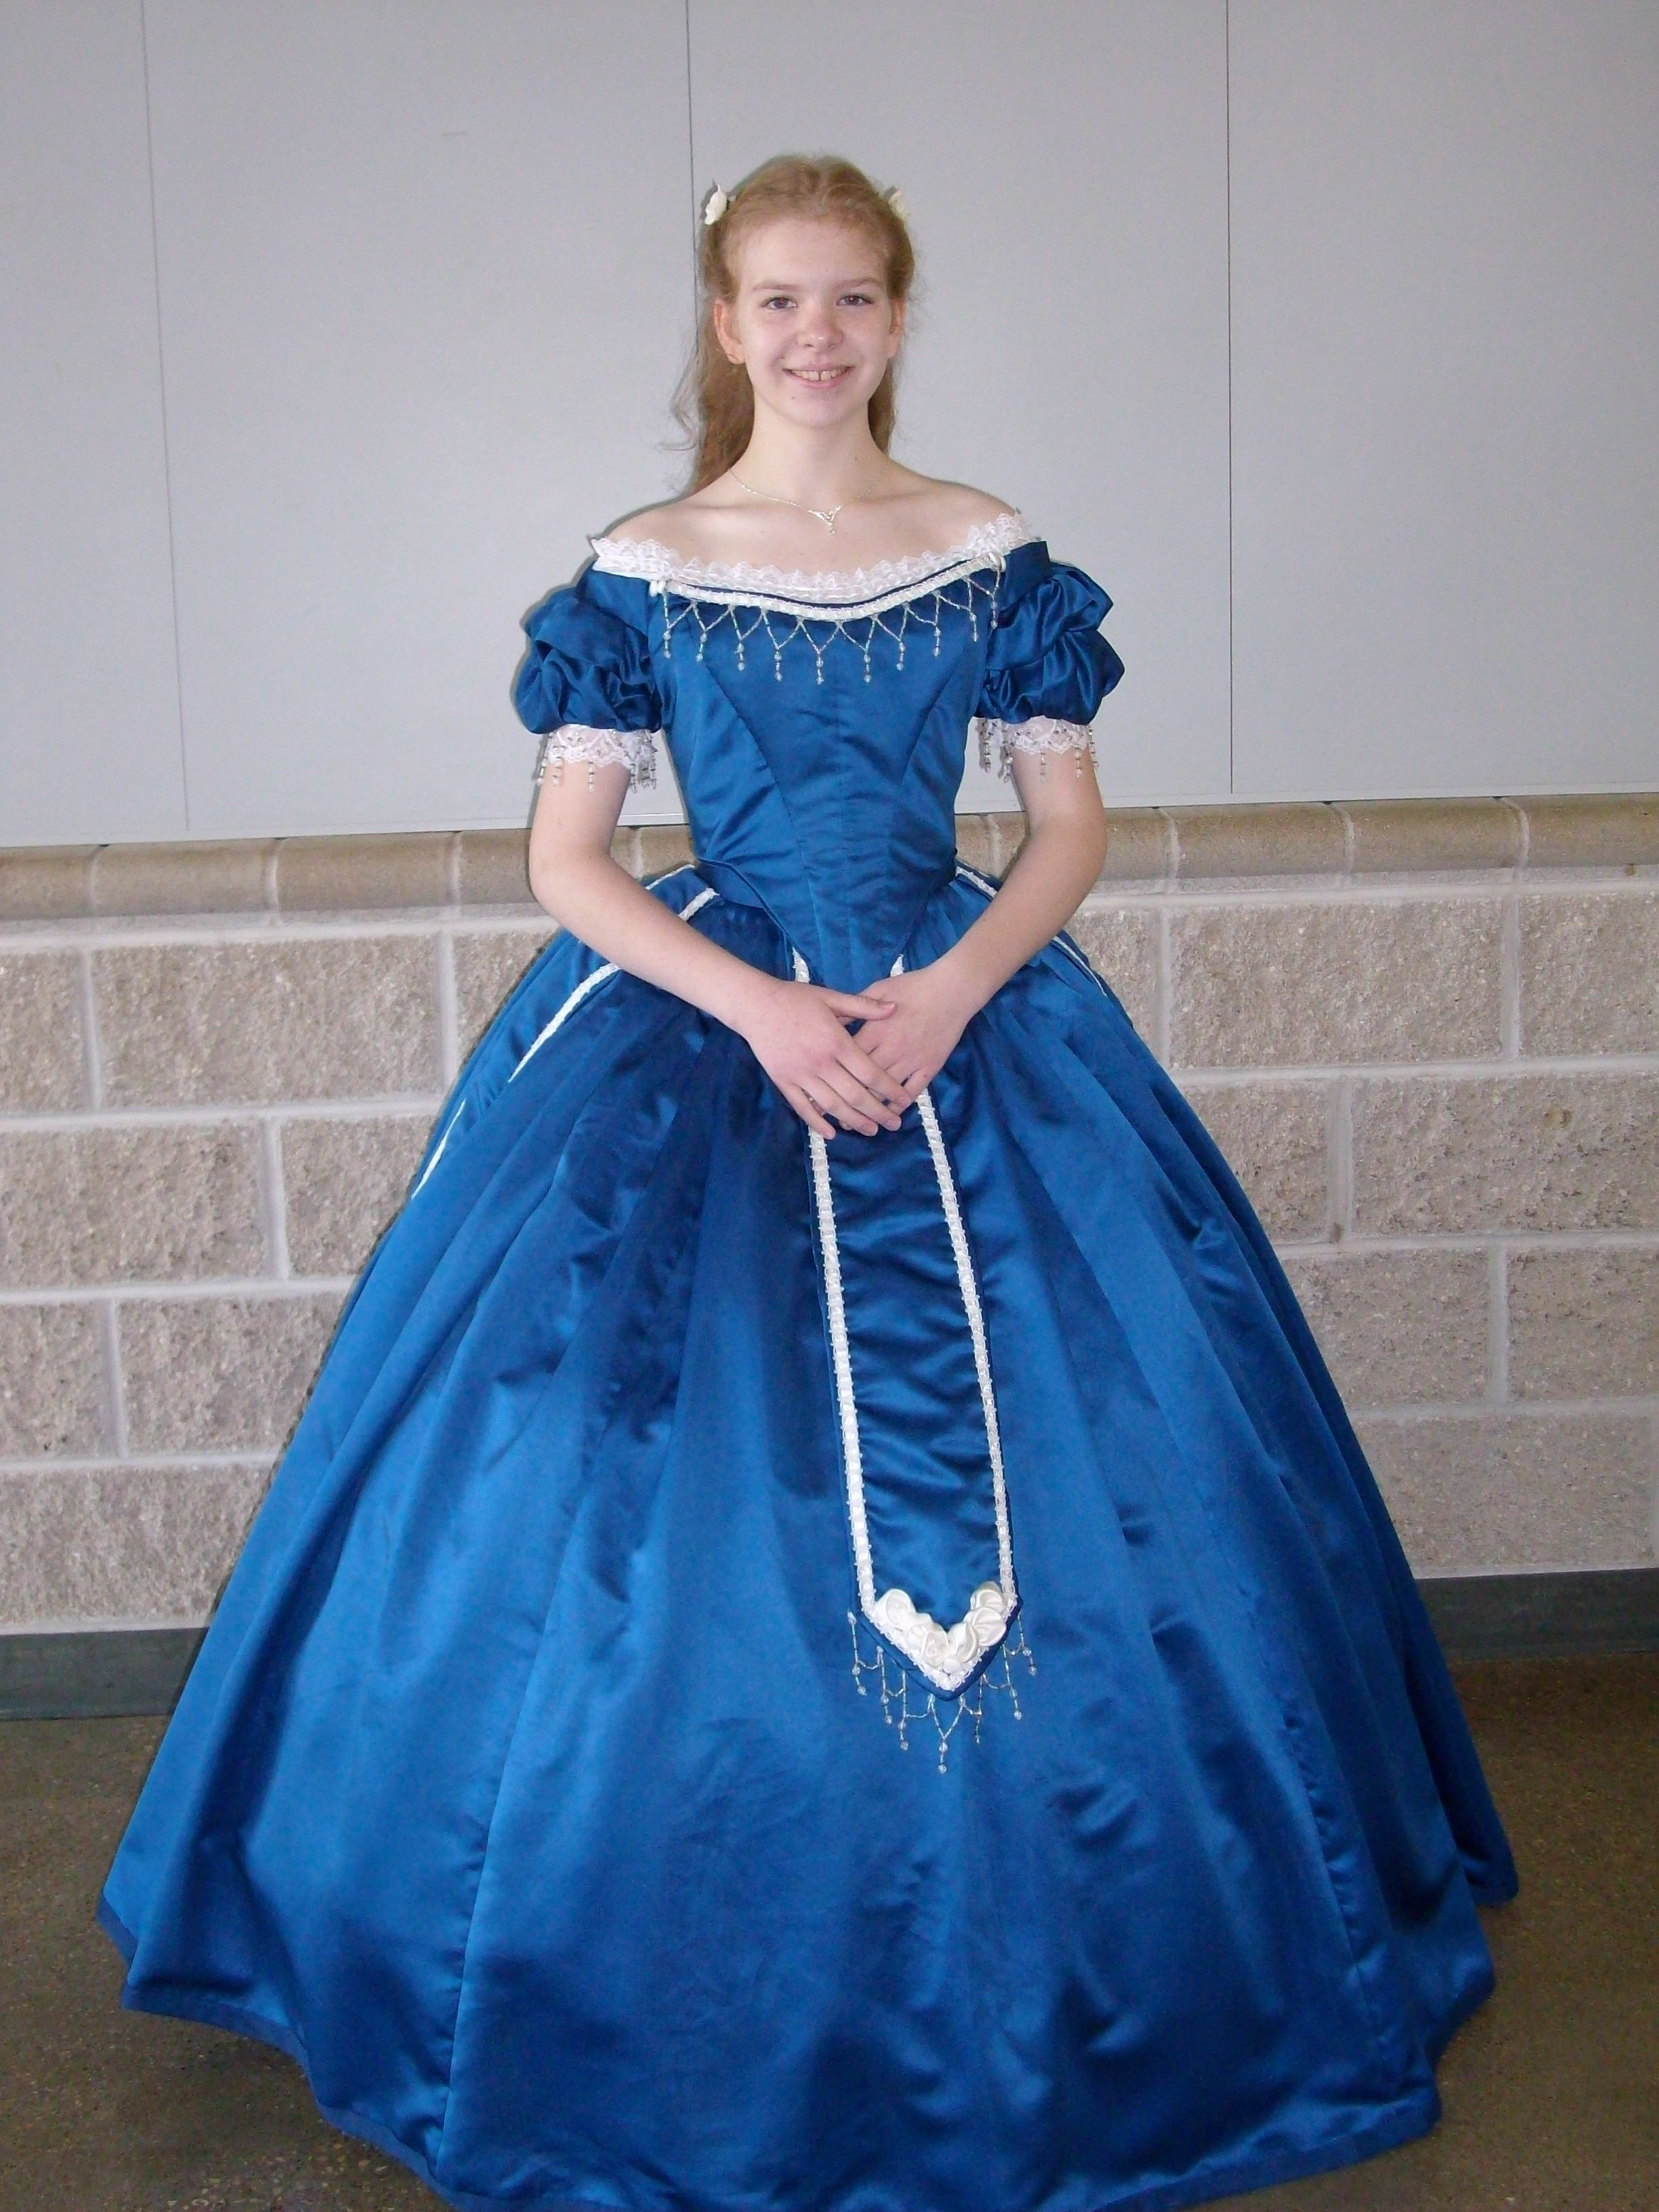 civil war ball gown royal blue dull satin with cream accents